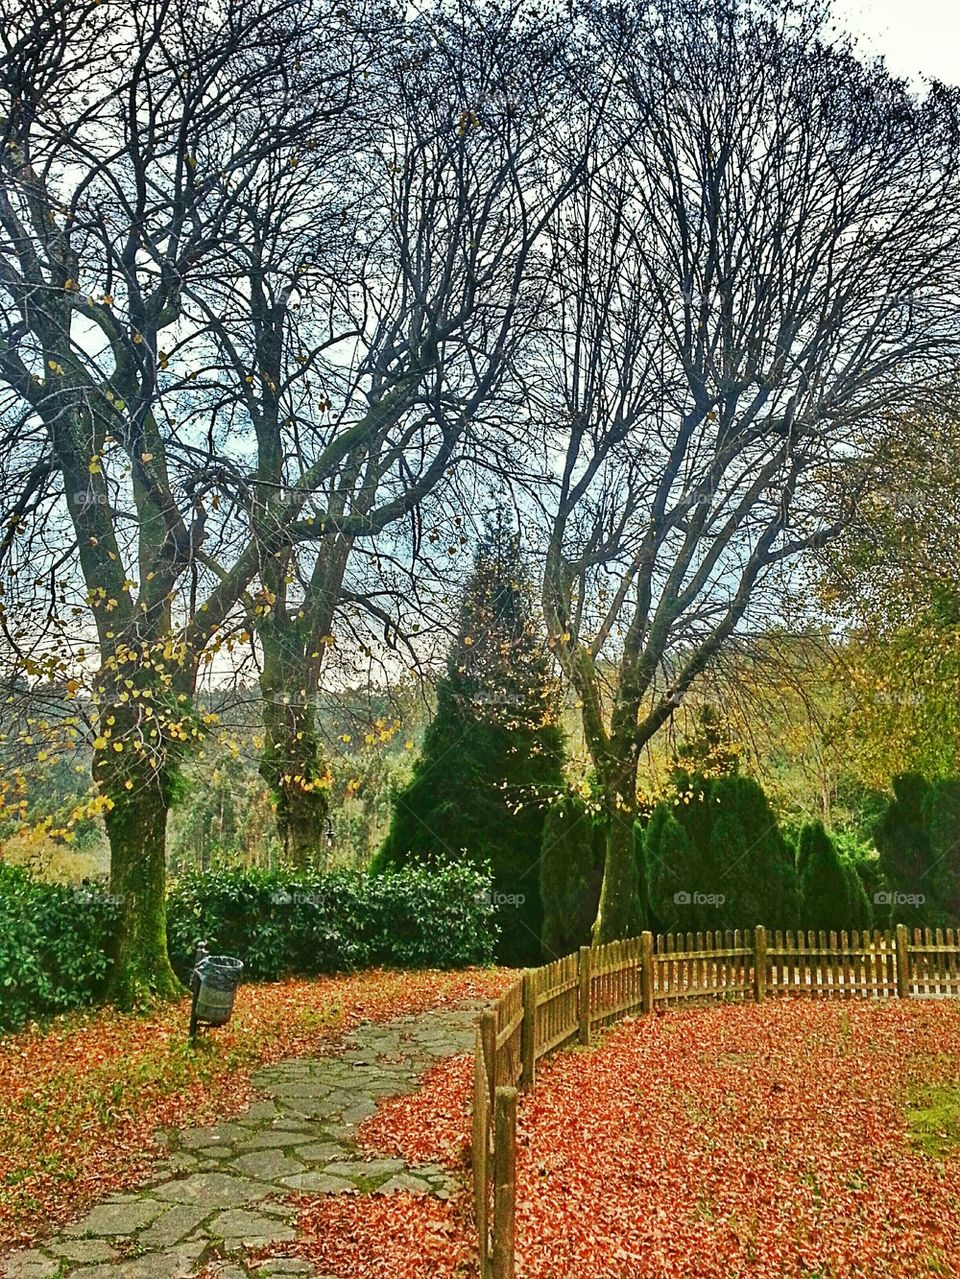 End of Autumn   image, fence, trees, leaves